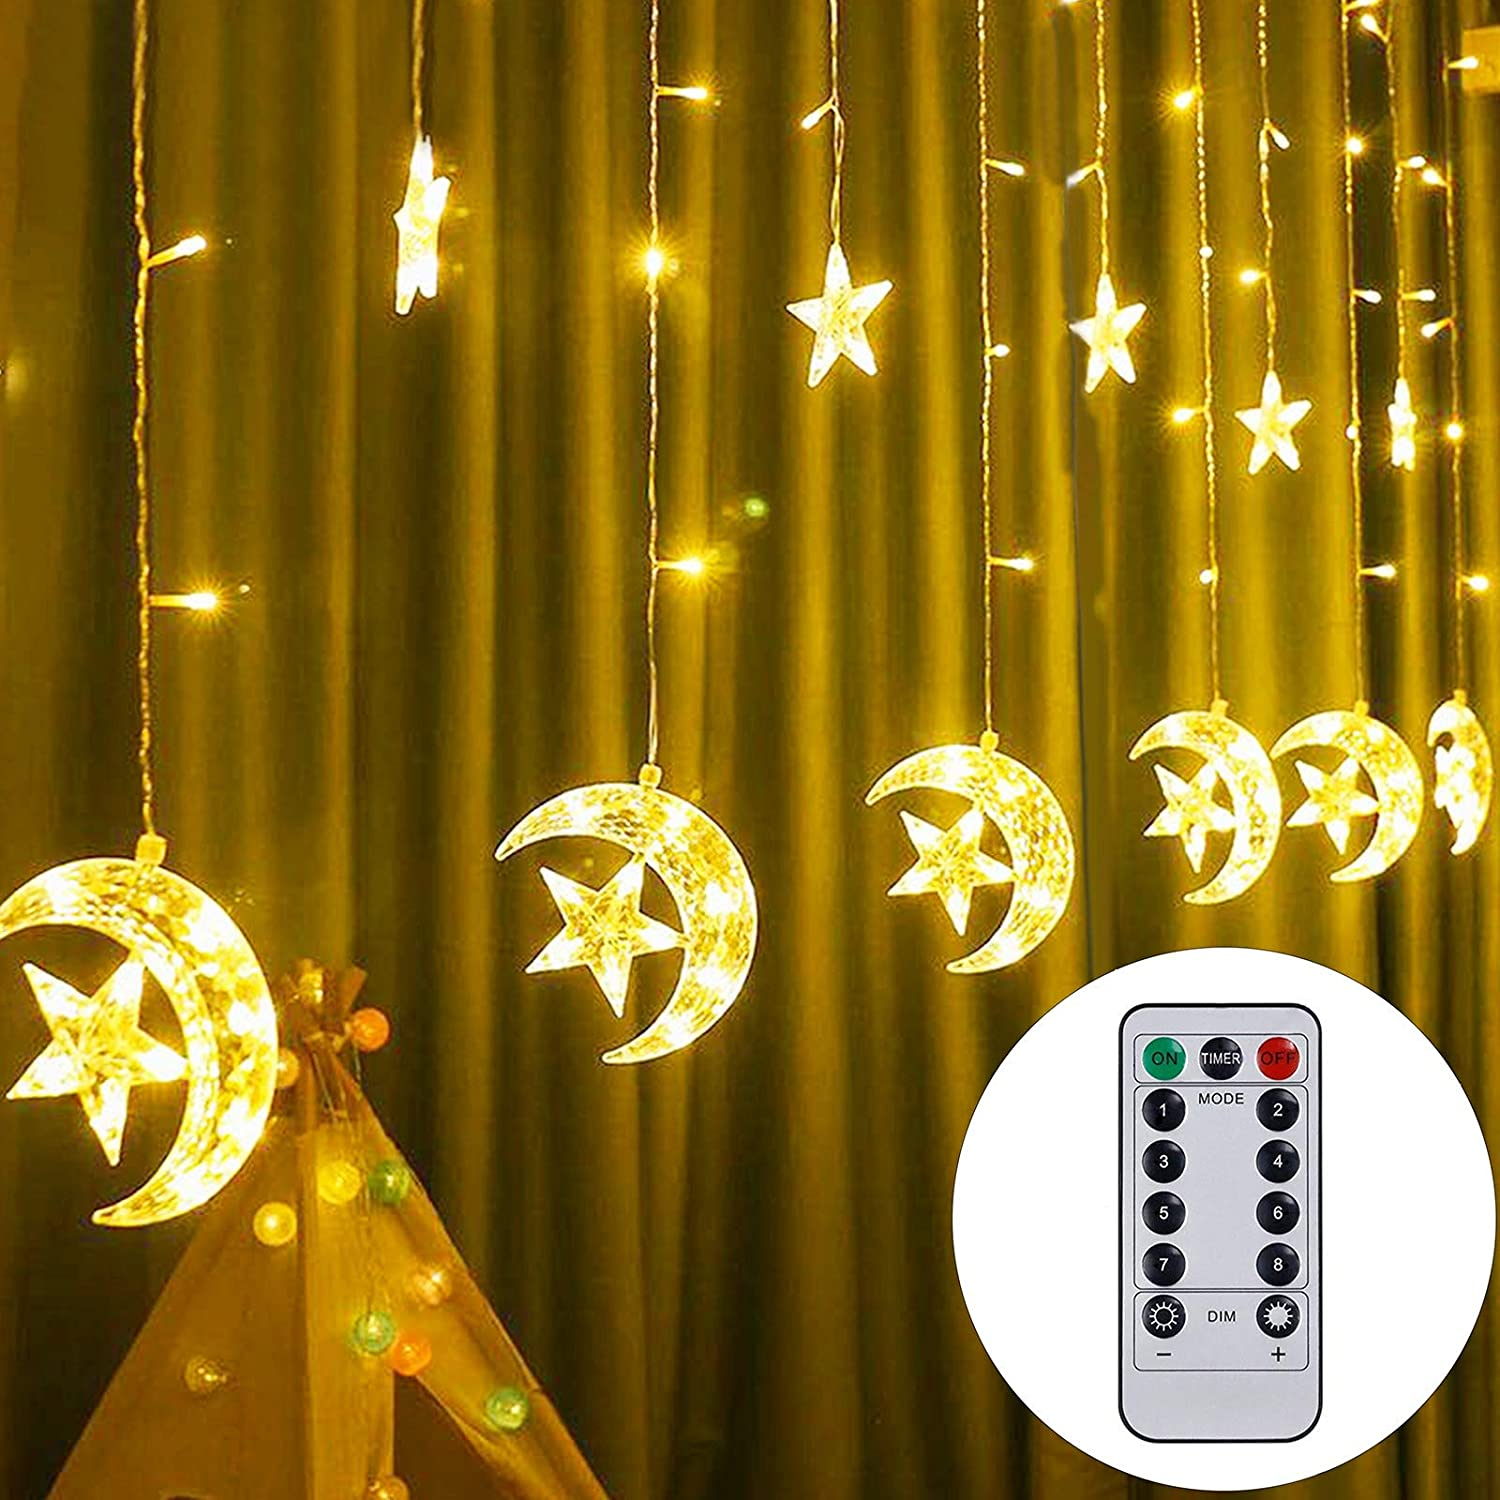 Twinkle Star 138 LED Star Moon Curtain String Lights, Window Curtain USB Powered Lights with Remote Control, 8 Modes Decorations for Ramadan, Christmas, Wedding, Party, Home, Patio Lawn, Warm White